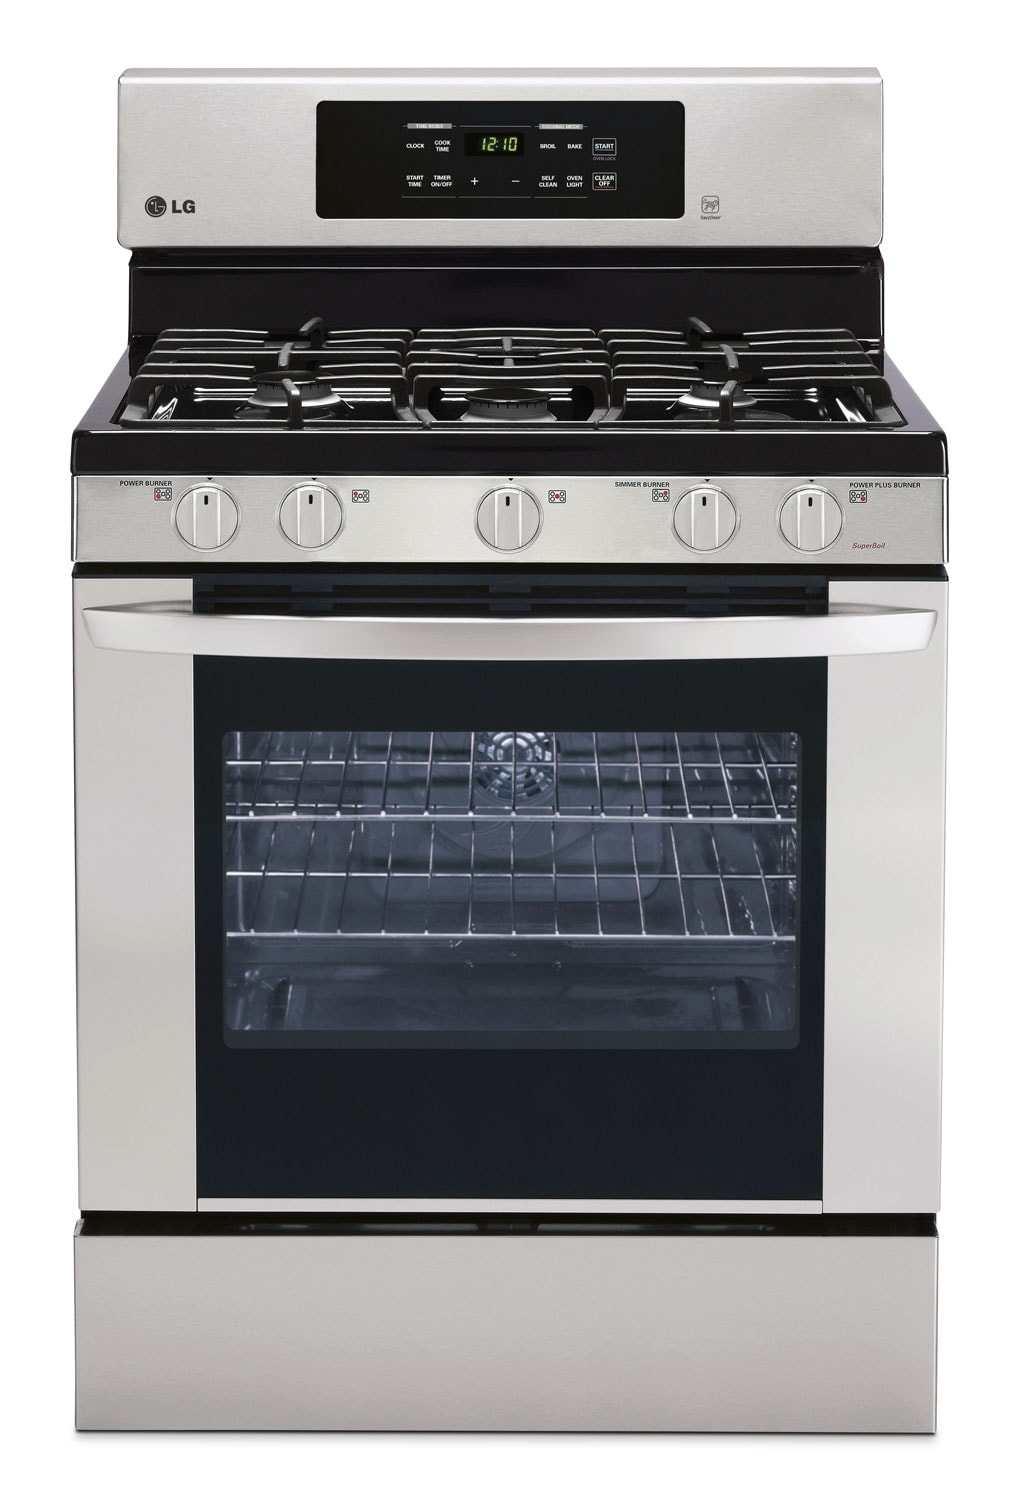 Cooking Products - LG Stainless Steel Freestanding Gas Range (5.4 Cu.Ft) - LRG3081ST